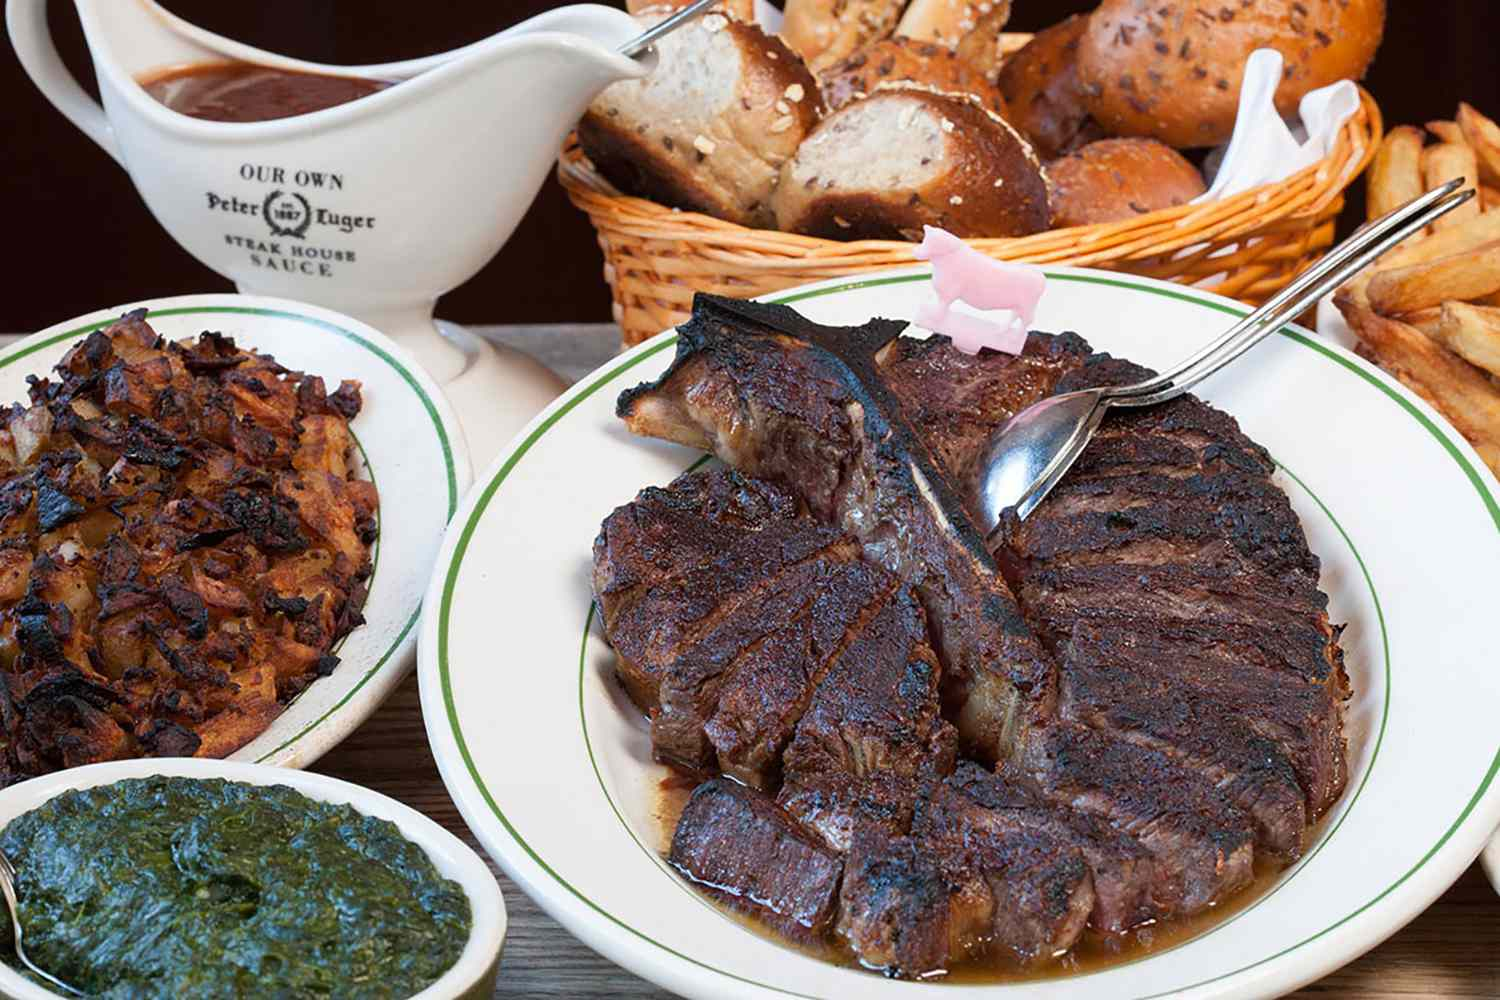 Delicious food at Peter Luger Steakhouse in Brooklyn